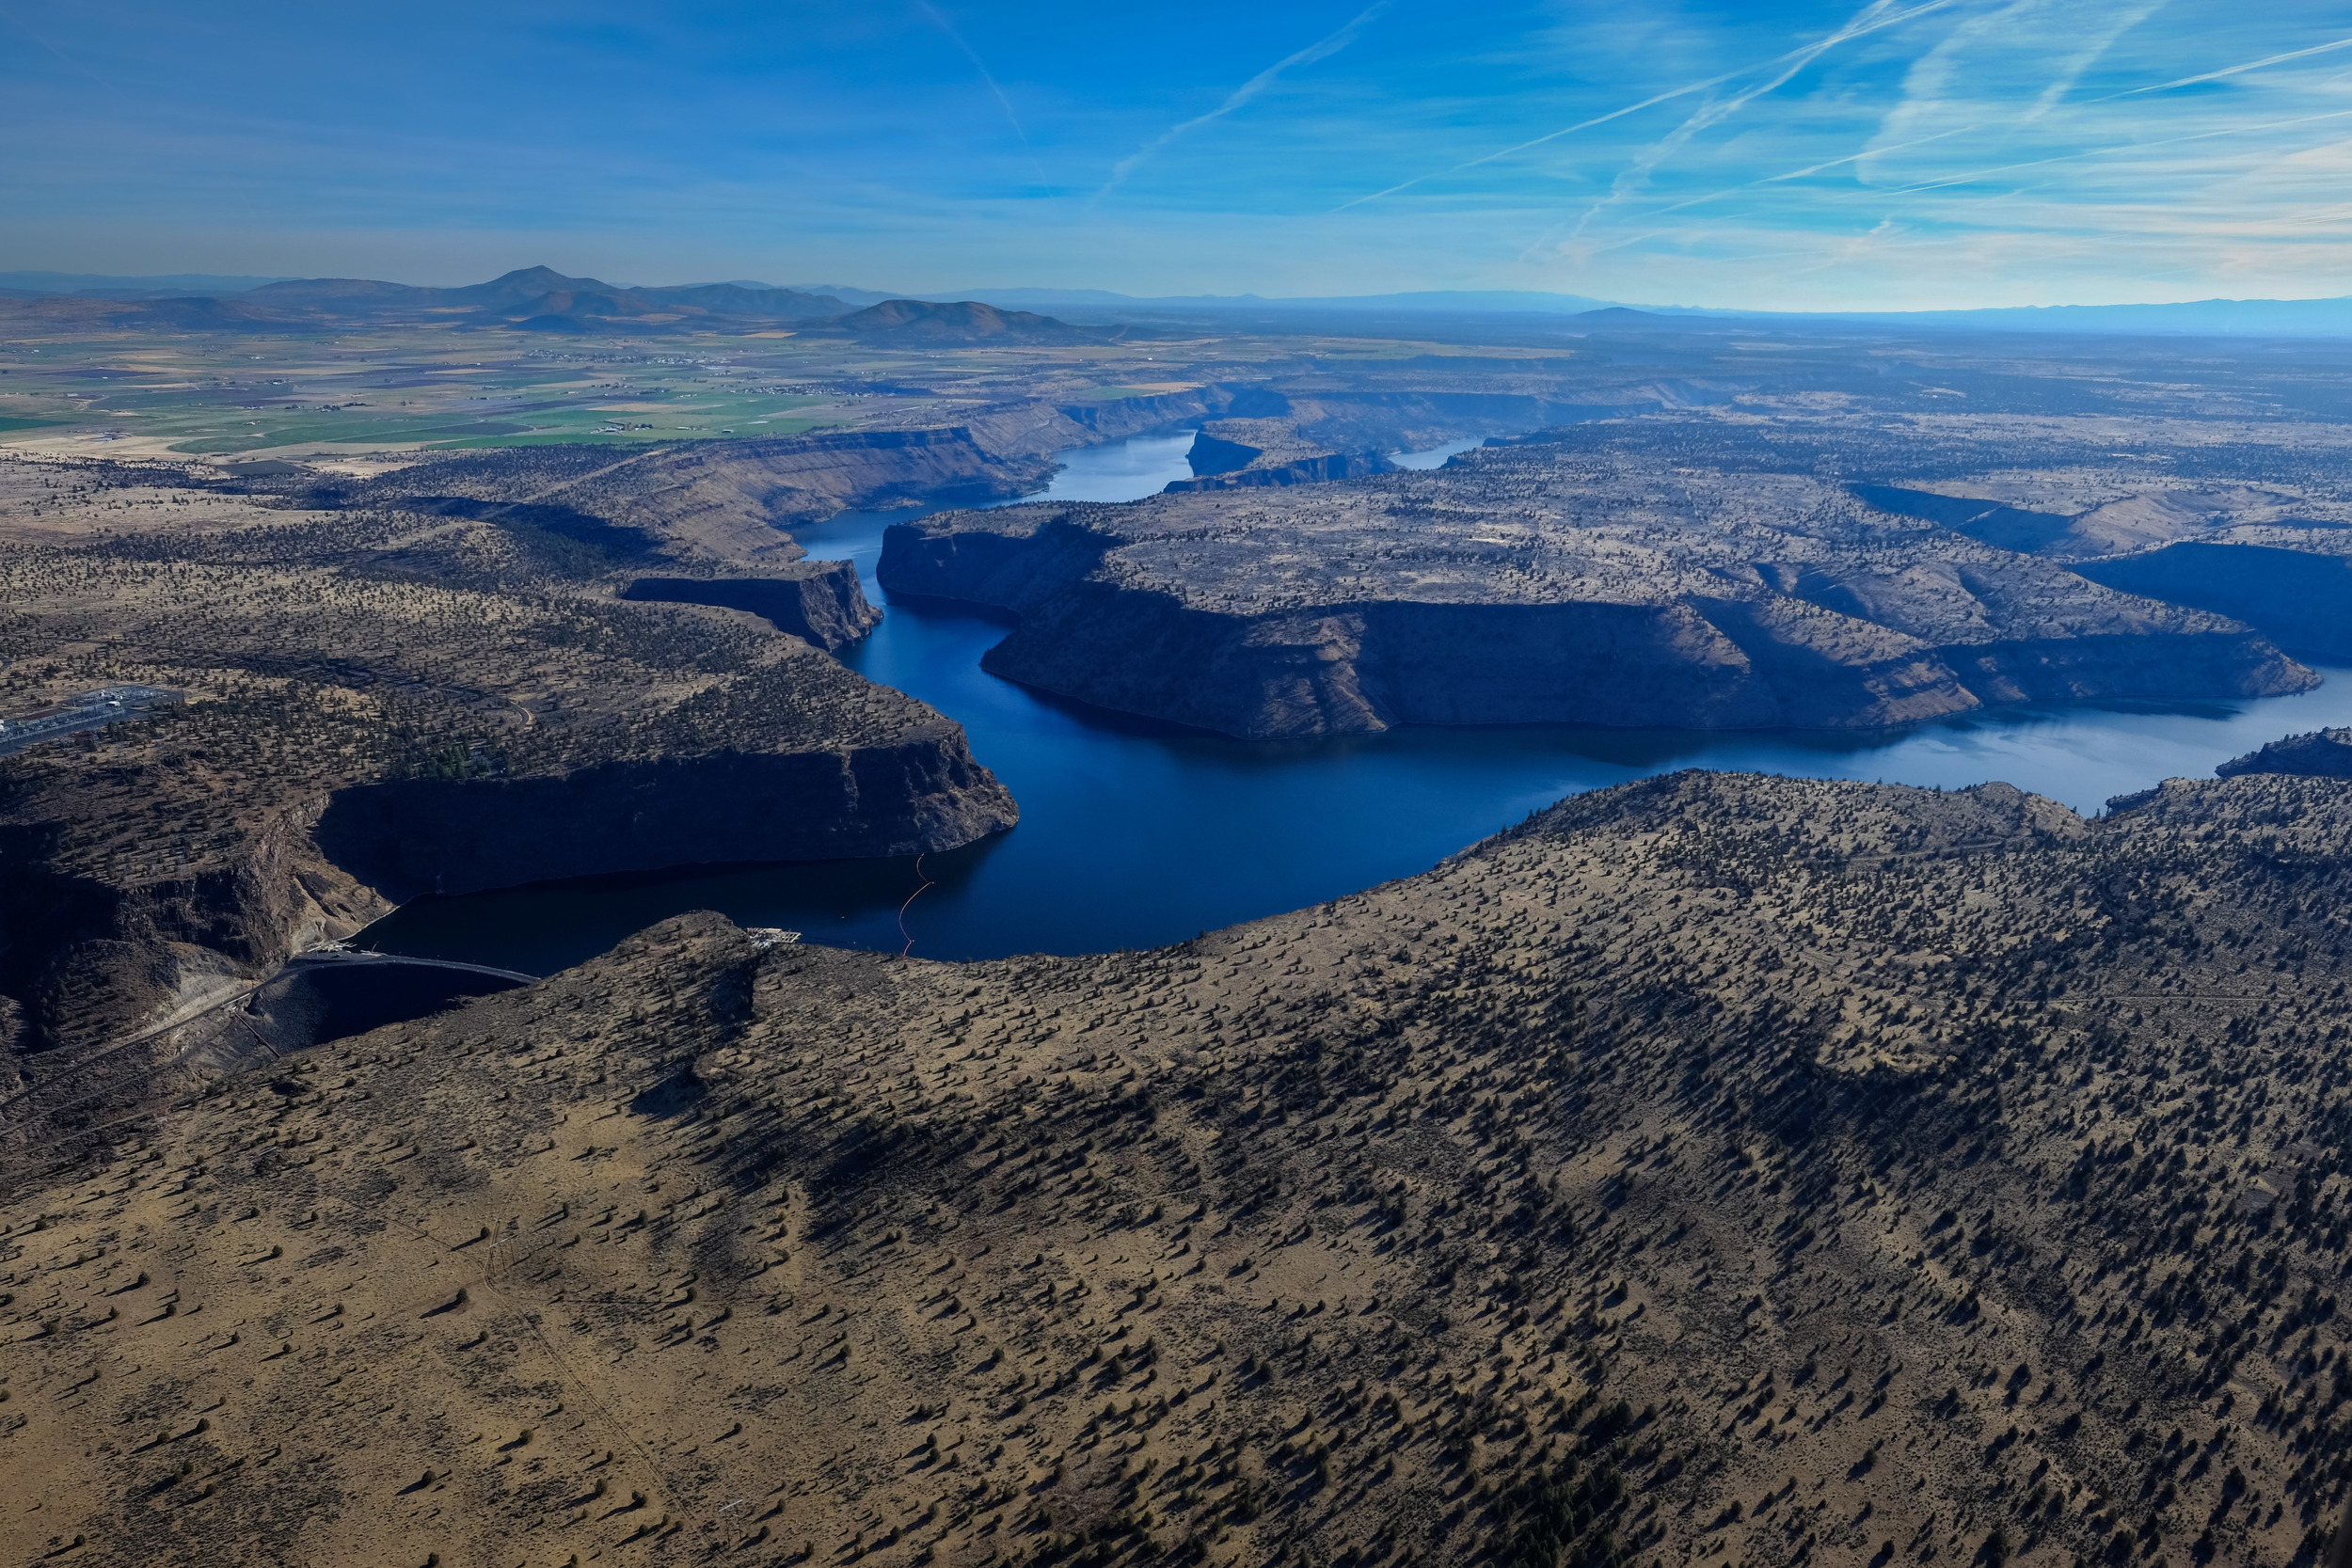 I switched to my wide lens (Fuji 14mm prime) for this shot of Lake Billy Chinook looking southeast (Note Round Butte Dam in the lower left.) I managed to get a clear view of the scene without any prop, wheel, or wing.  In order to do this, I am forced to project the lens out into the open air.  This causes vibration and camera shake so I use my regular high ISO of 800 with an aperture of 5.6.